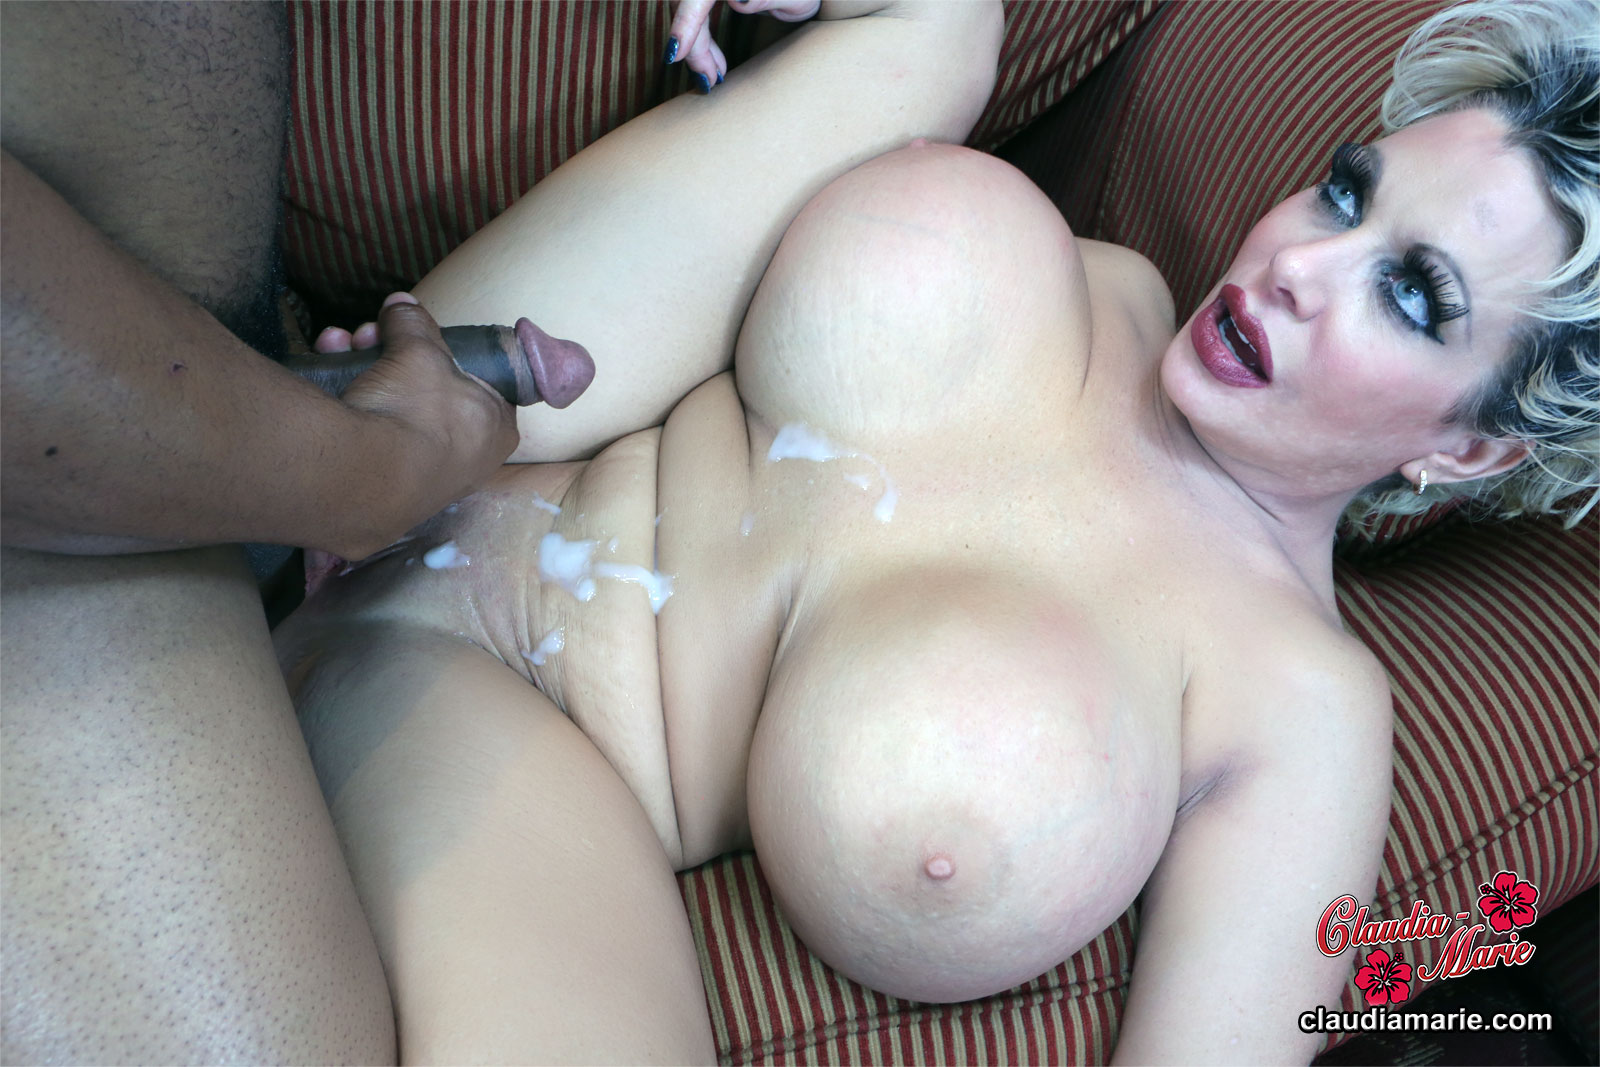 giant-silicone-tits-getting-fucked-video